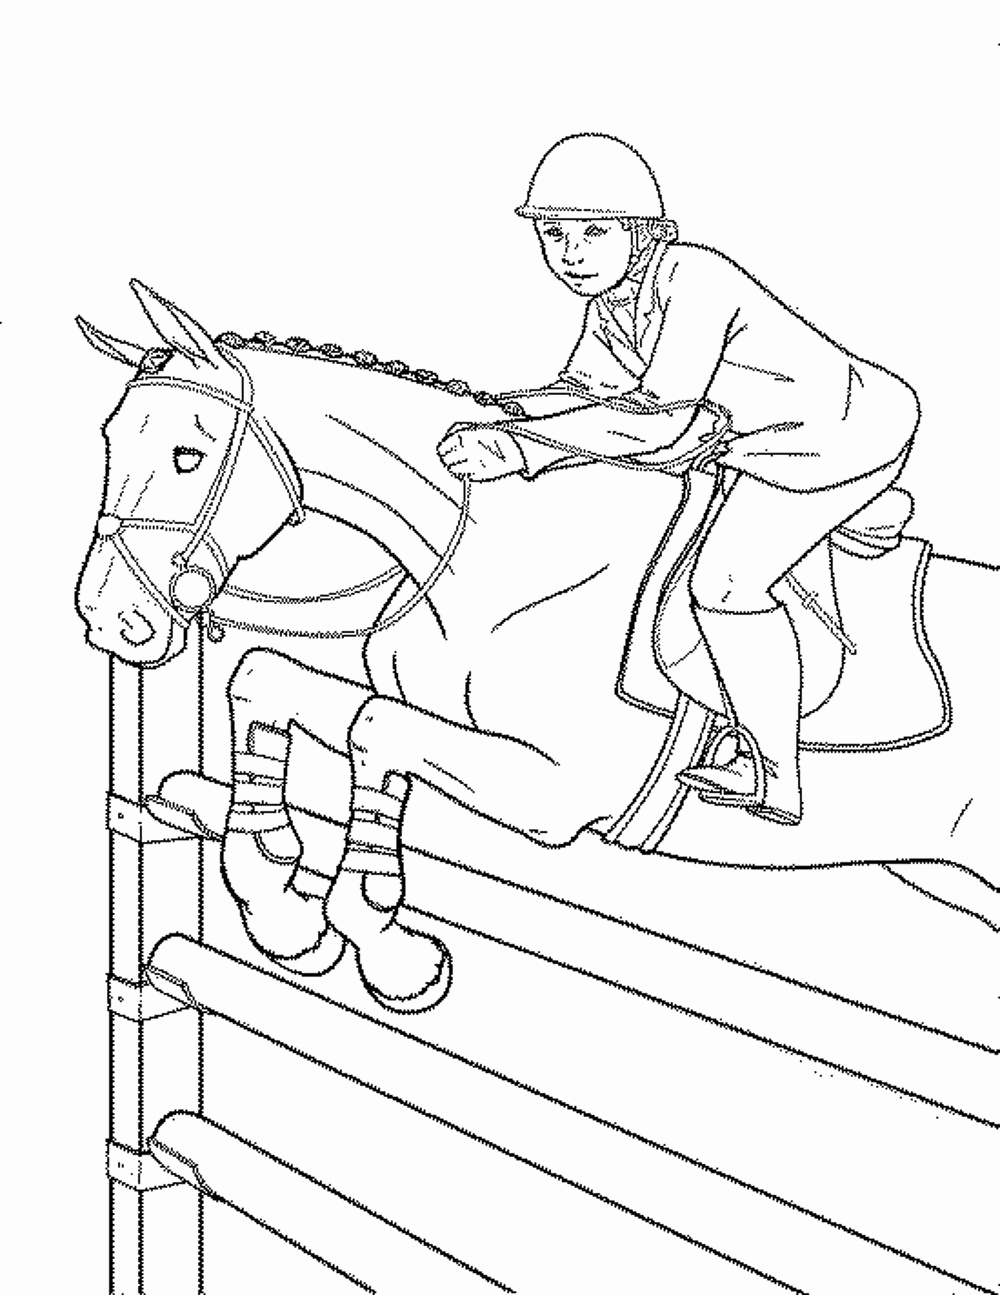 Free Printable Coloring Pages Horses Printable Coloring Page Free Download Of Horse Detailed Coloring Pages Gallery